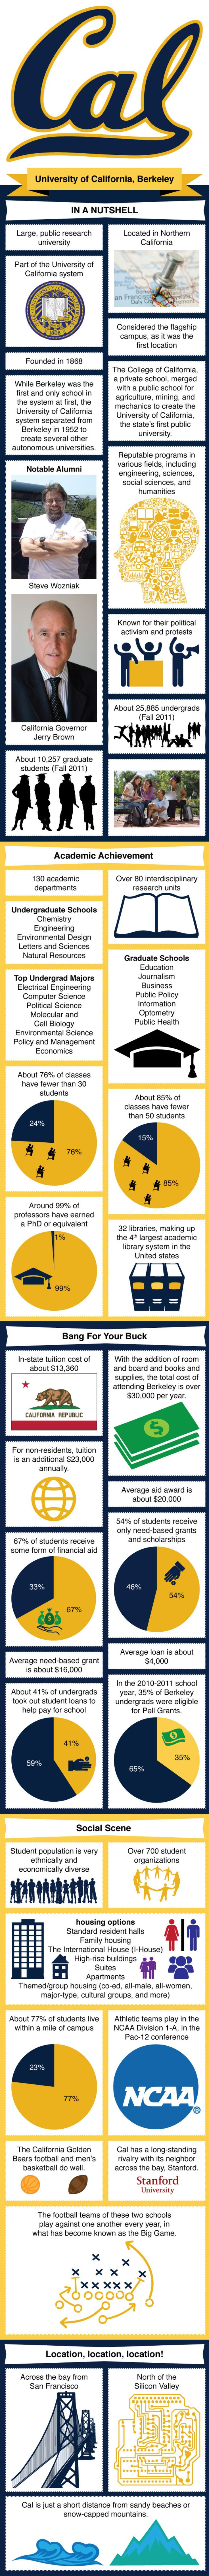 17 best ideas about uc berkeley graduate school university of california berkeley cal infographic gives information about the us university admission programs fees etc